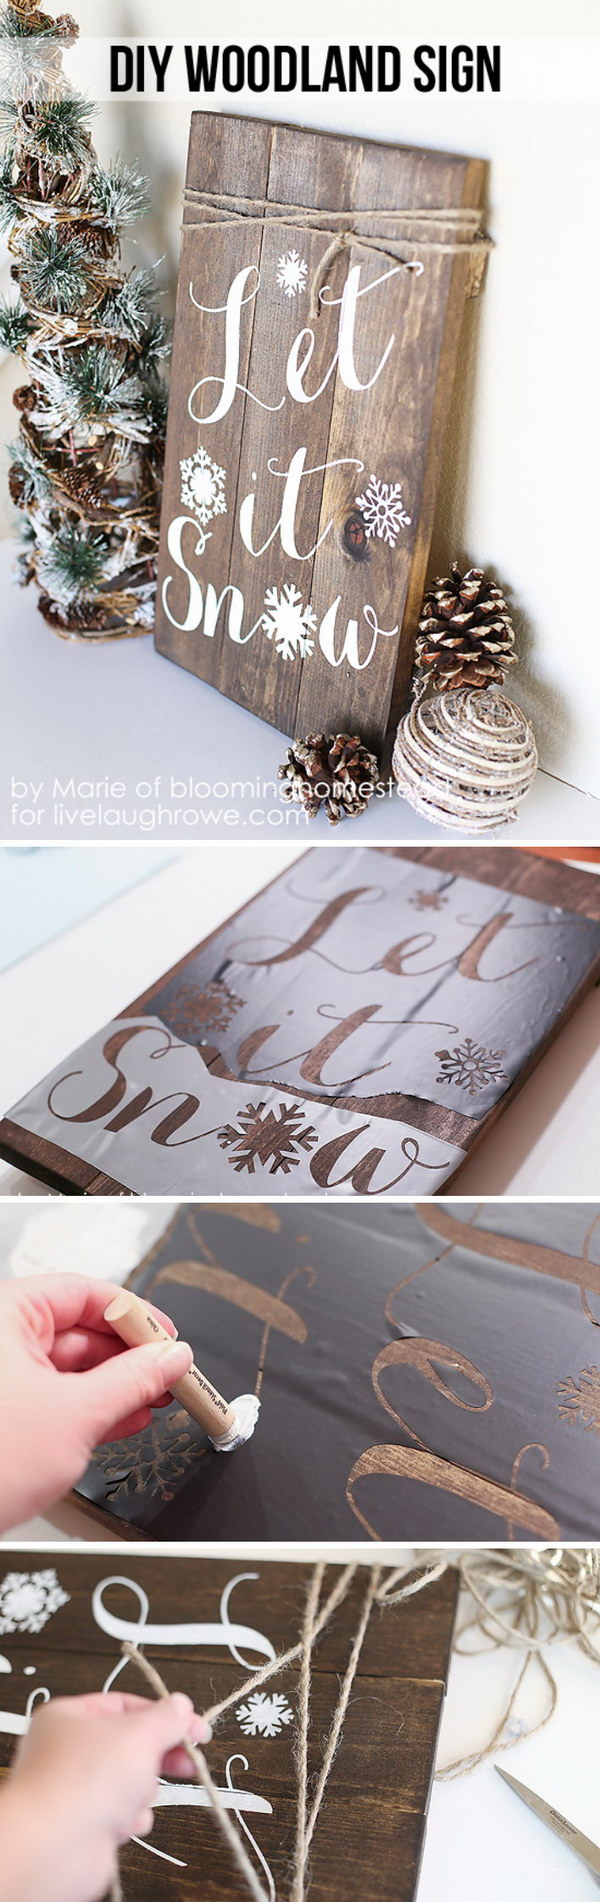 Rustic christmas decorations diy - Let It Snow Sign